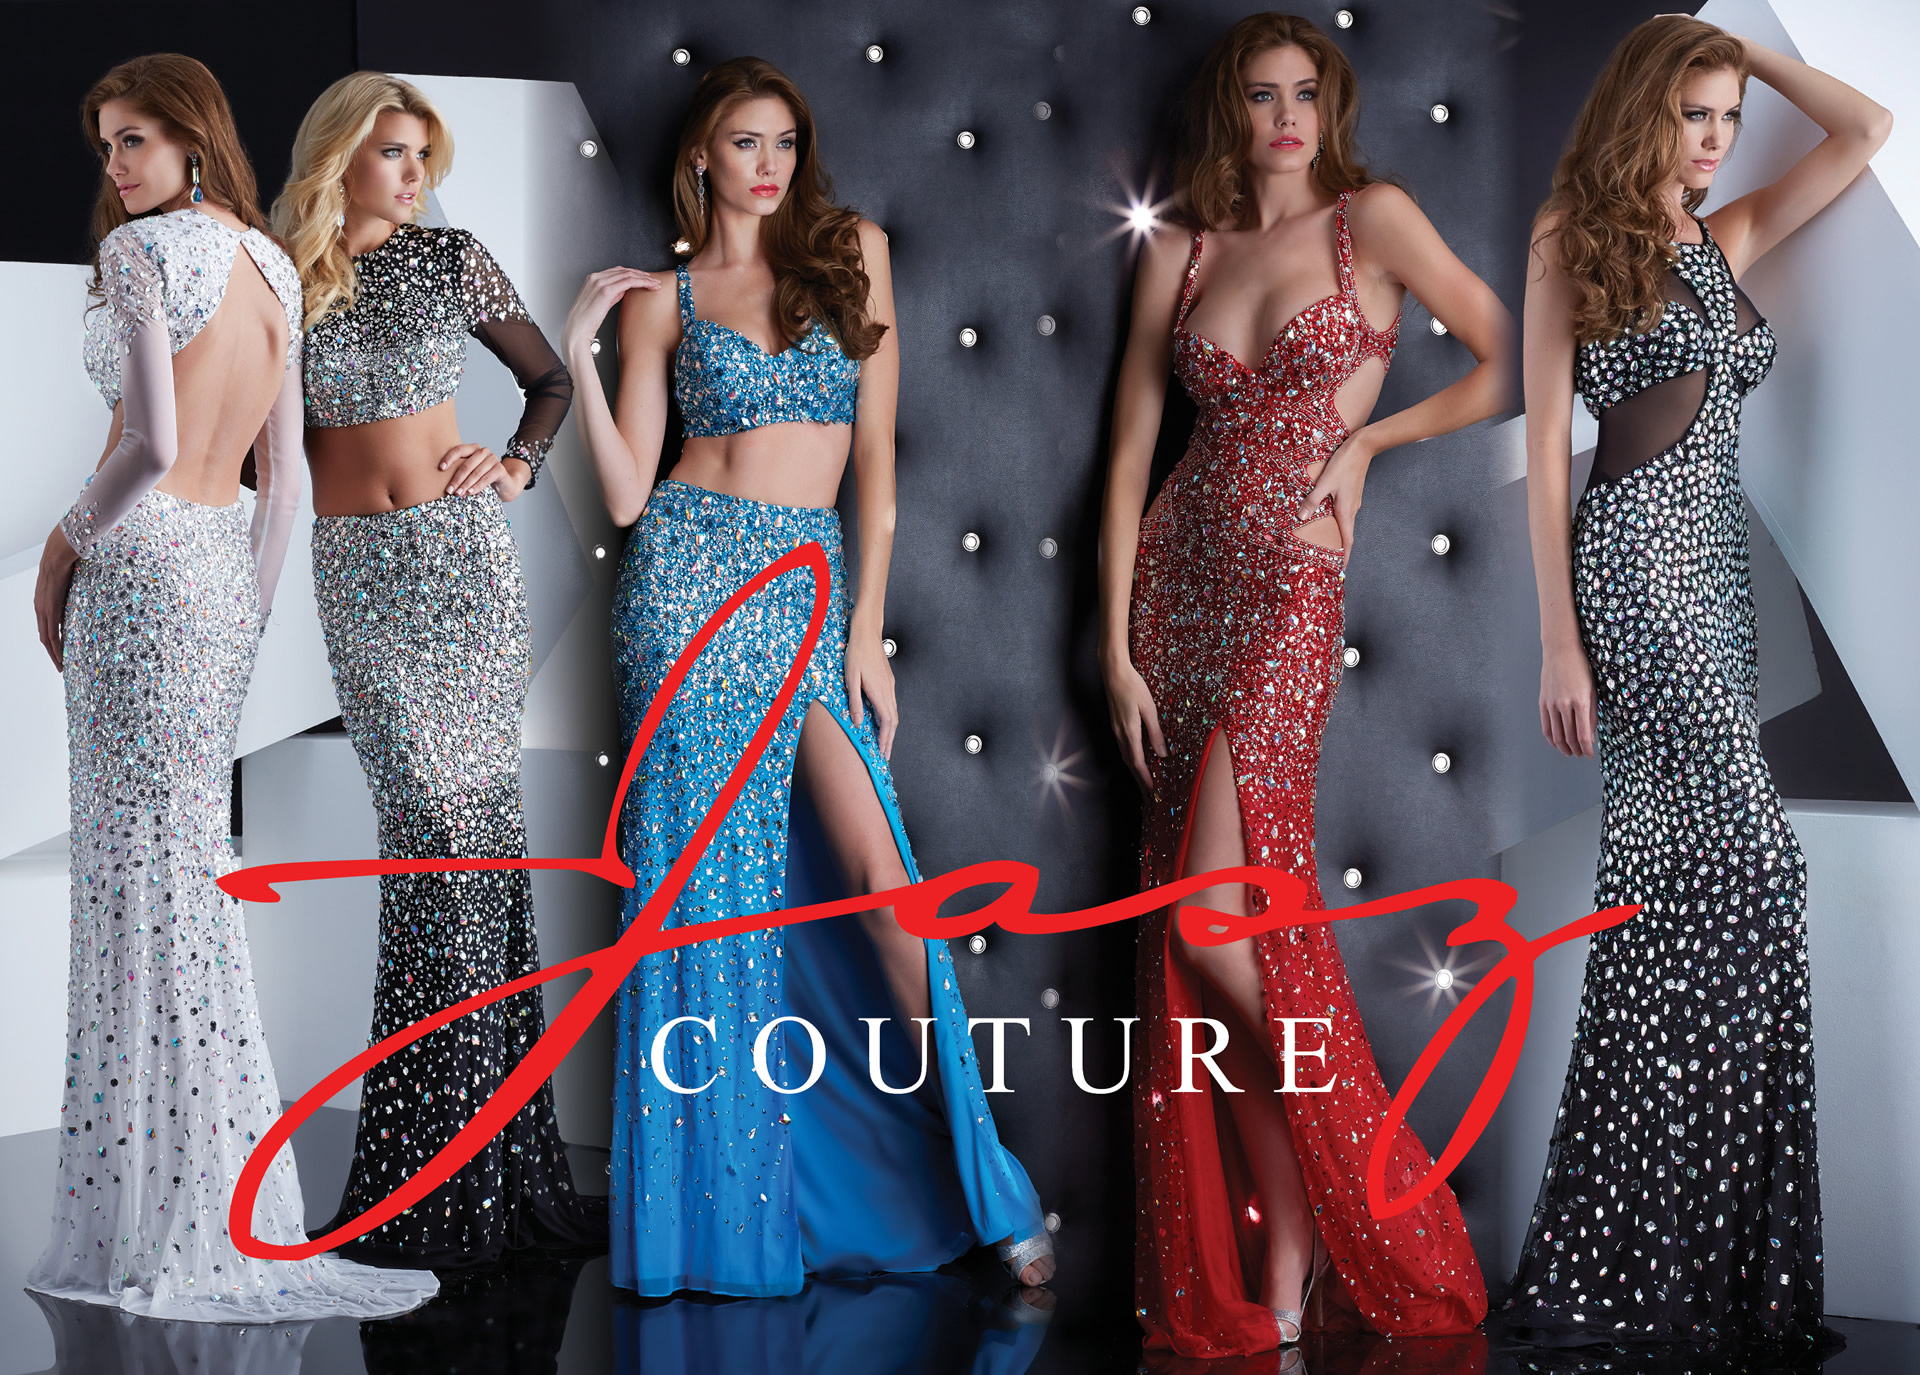 Couture - Prom Dresses 2015, Homecoming Dresses 2014